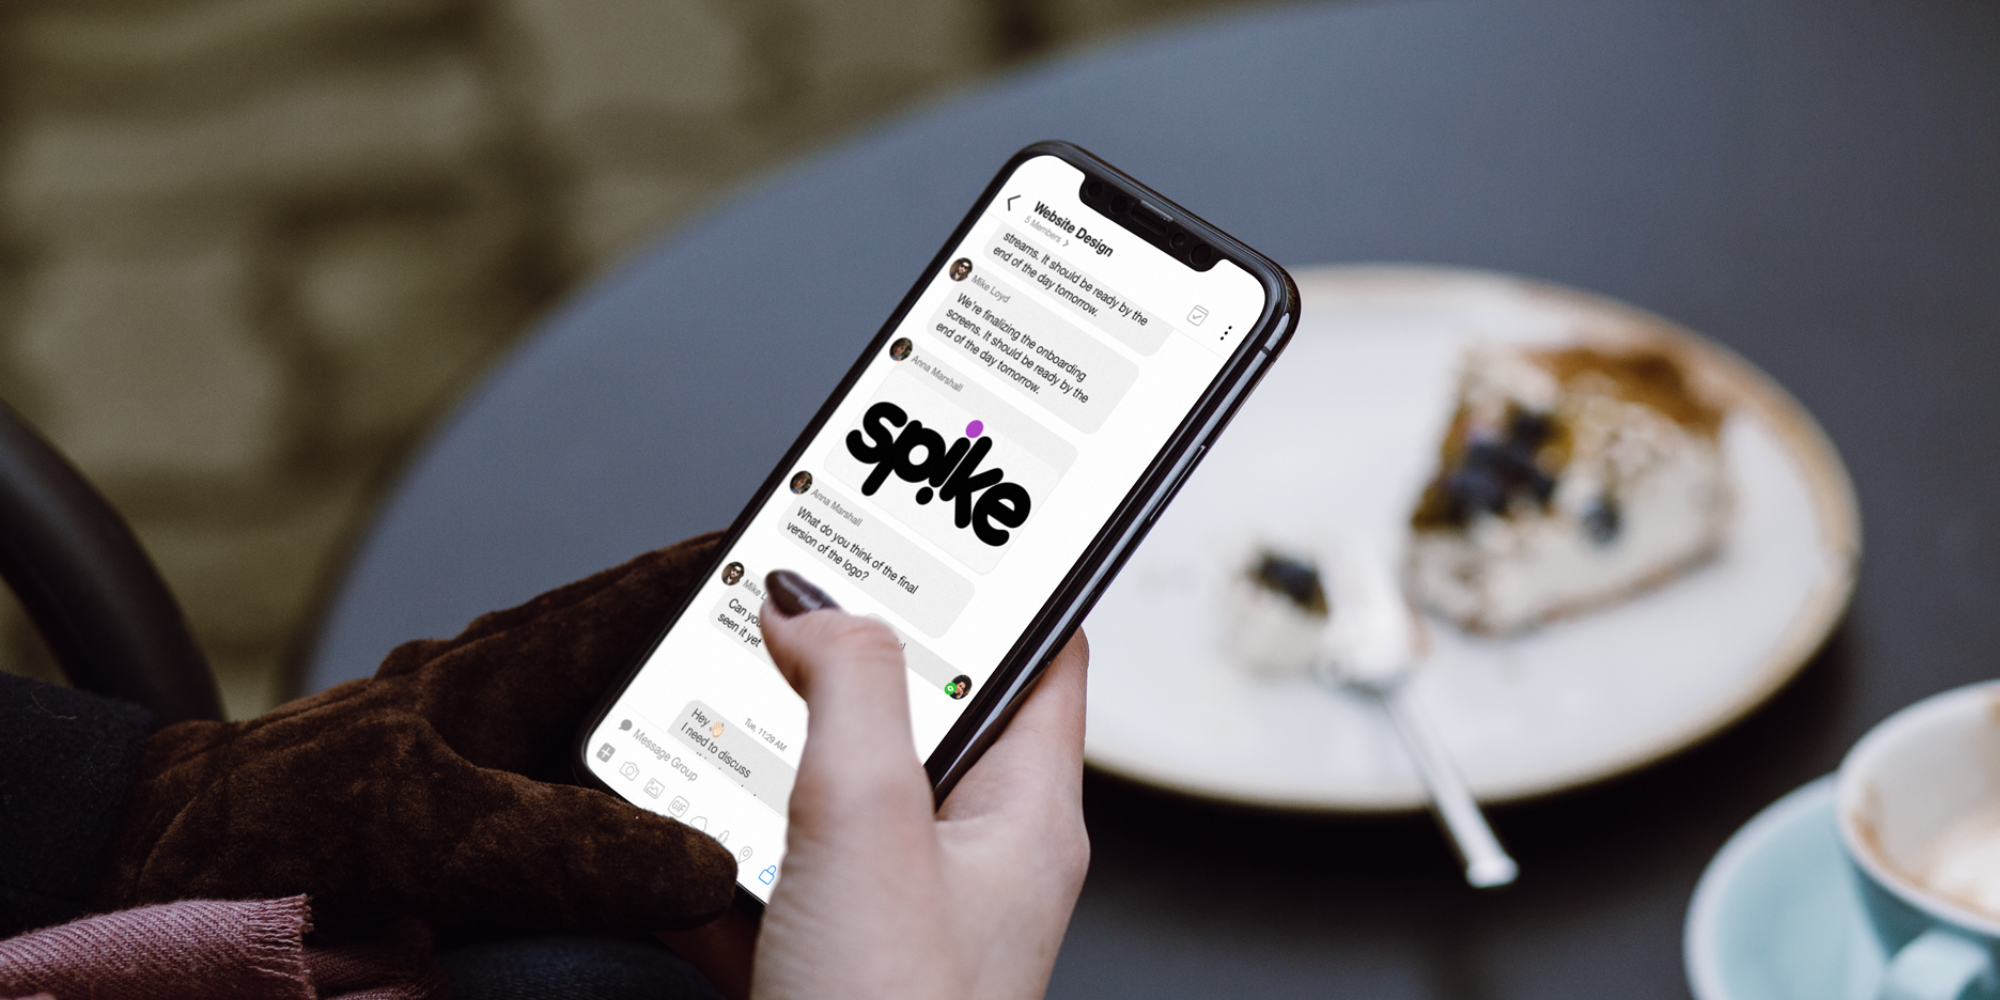 Spike Email app